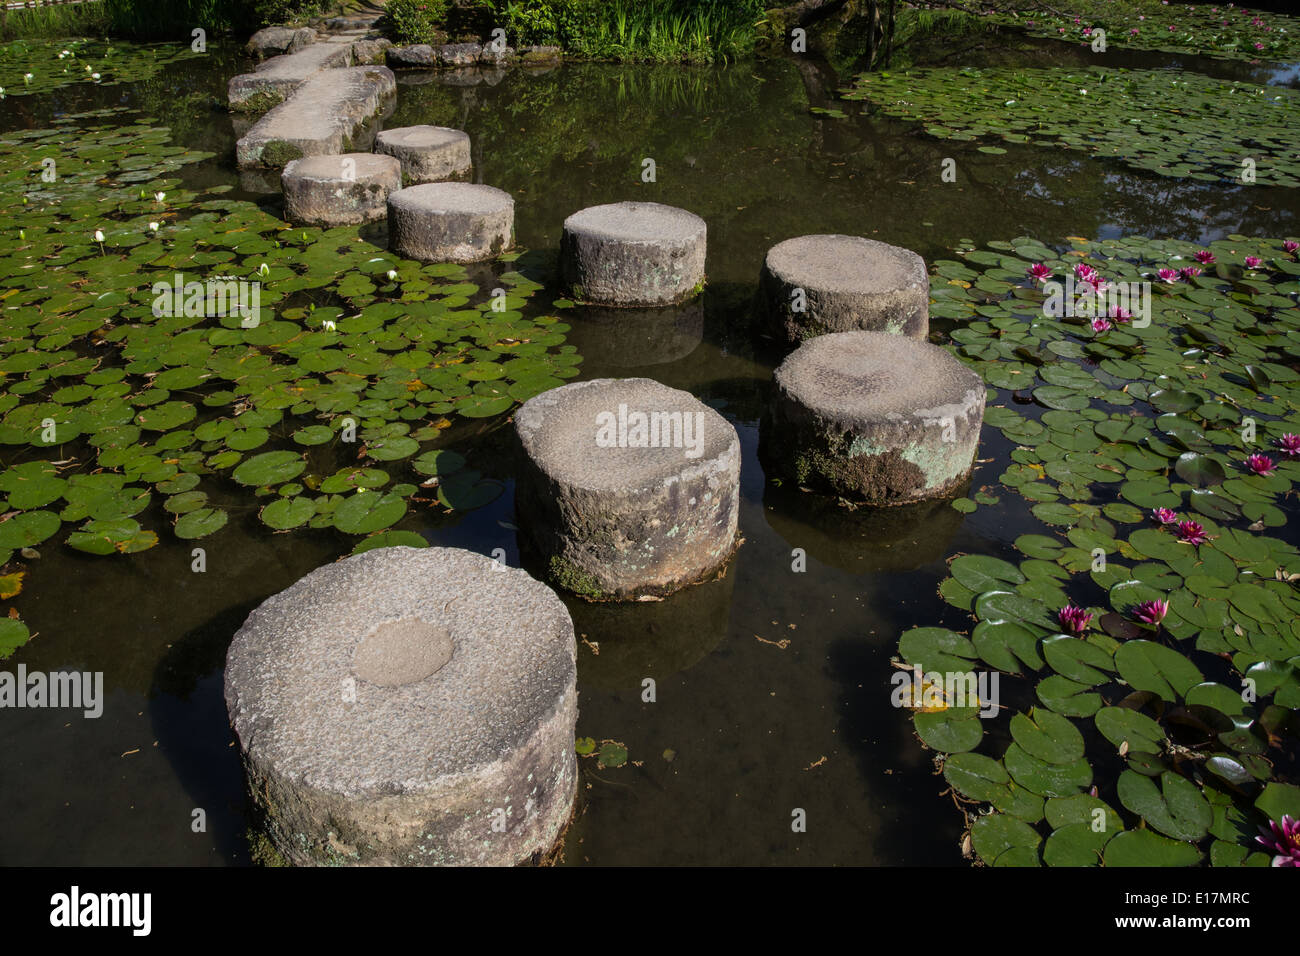 Stepping stones are called tobi-ishi in Japanese, literally skipping stones or flying stones. - Stock Image